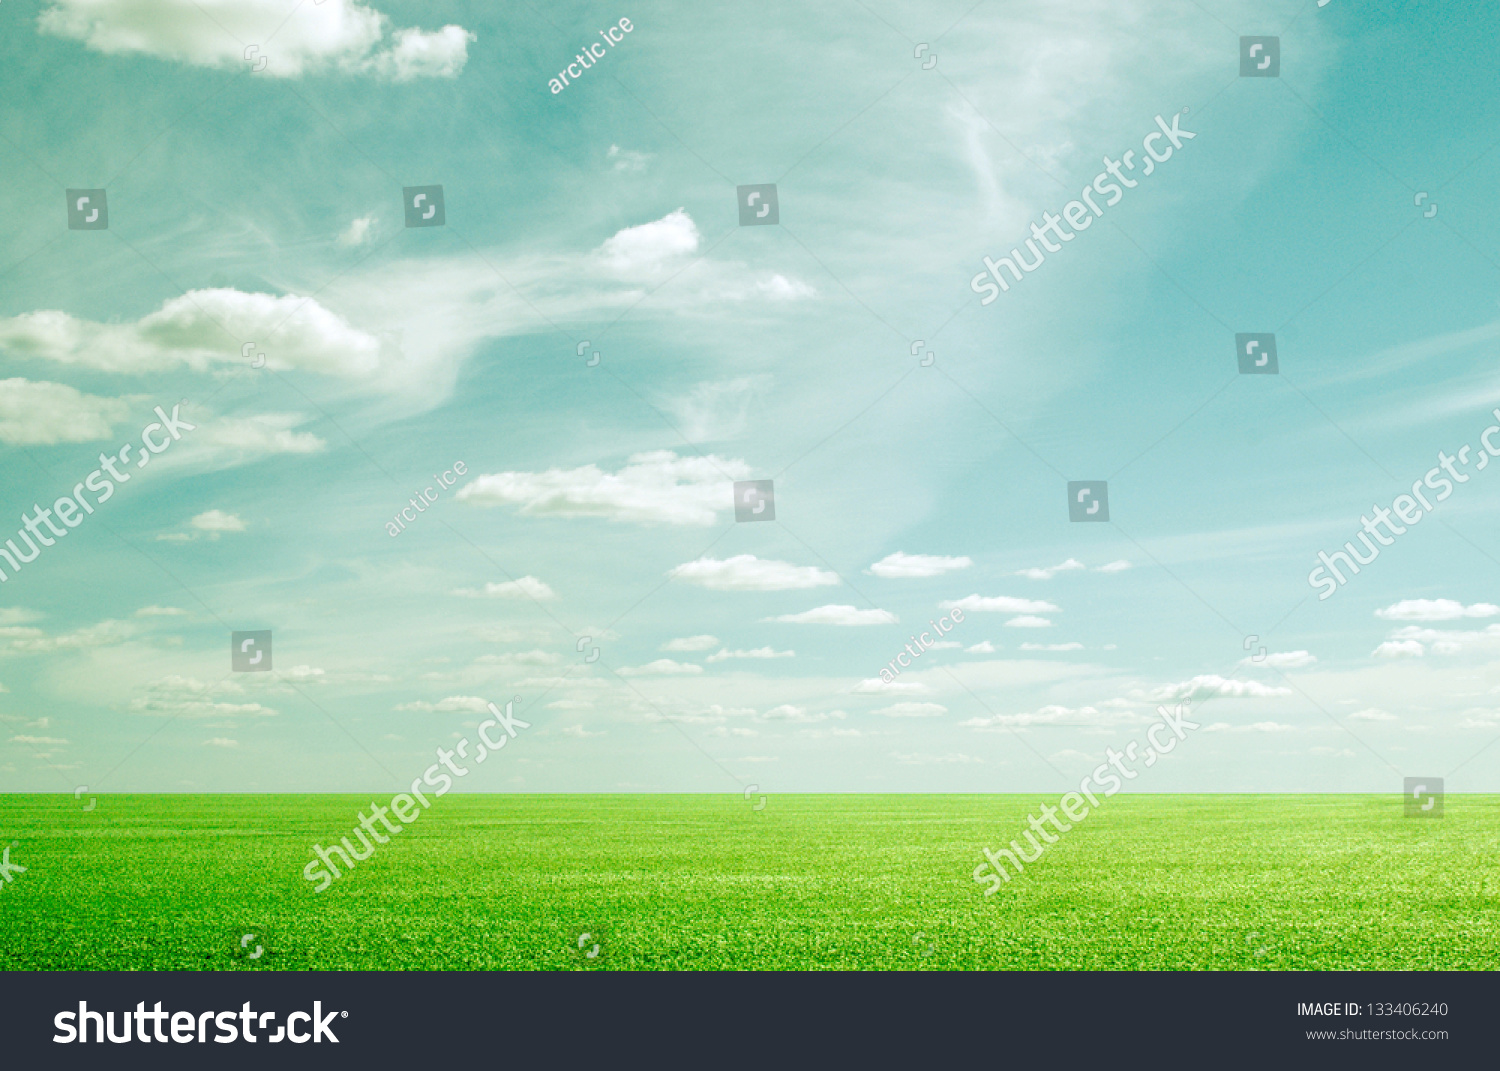 Grunge Beauty Blue Sky And Green Grass Stock Photo ...